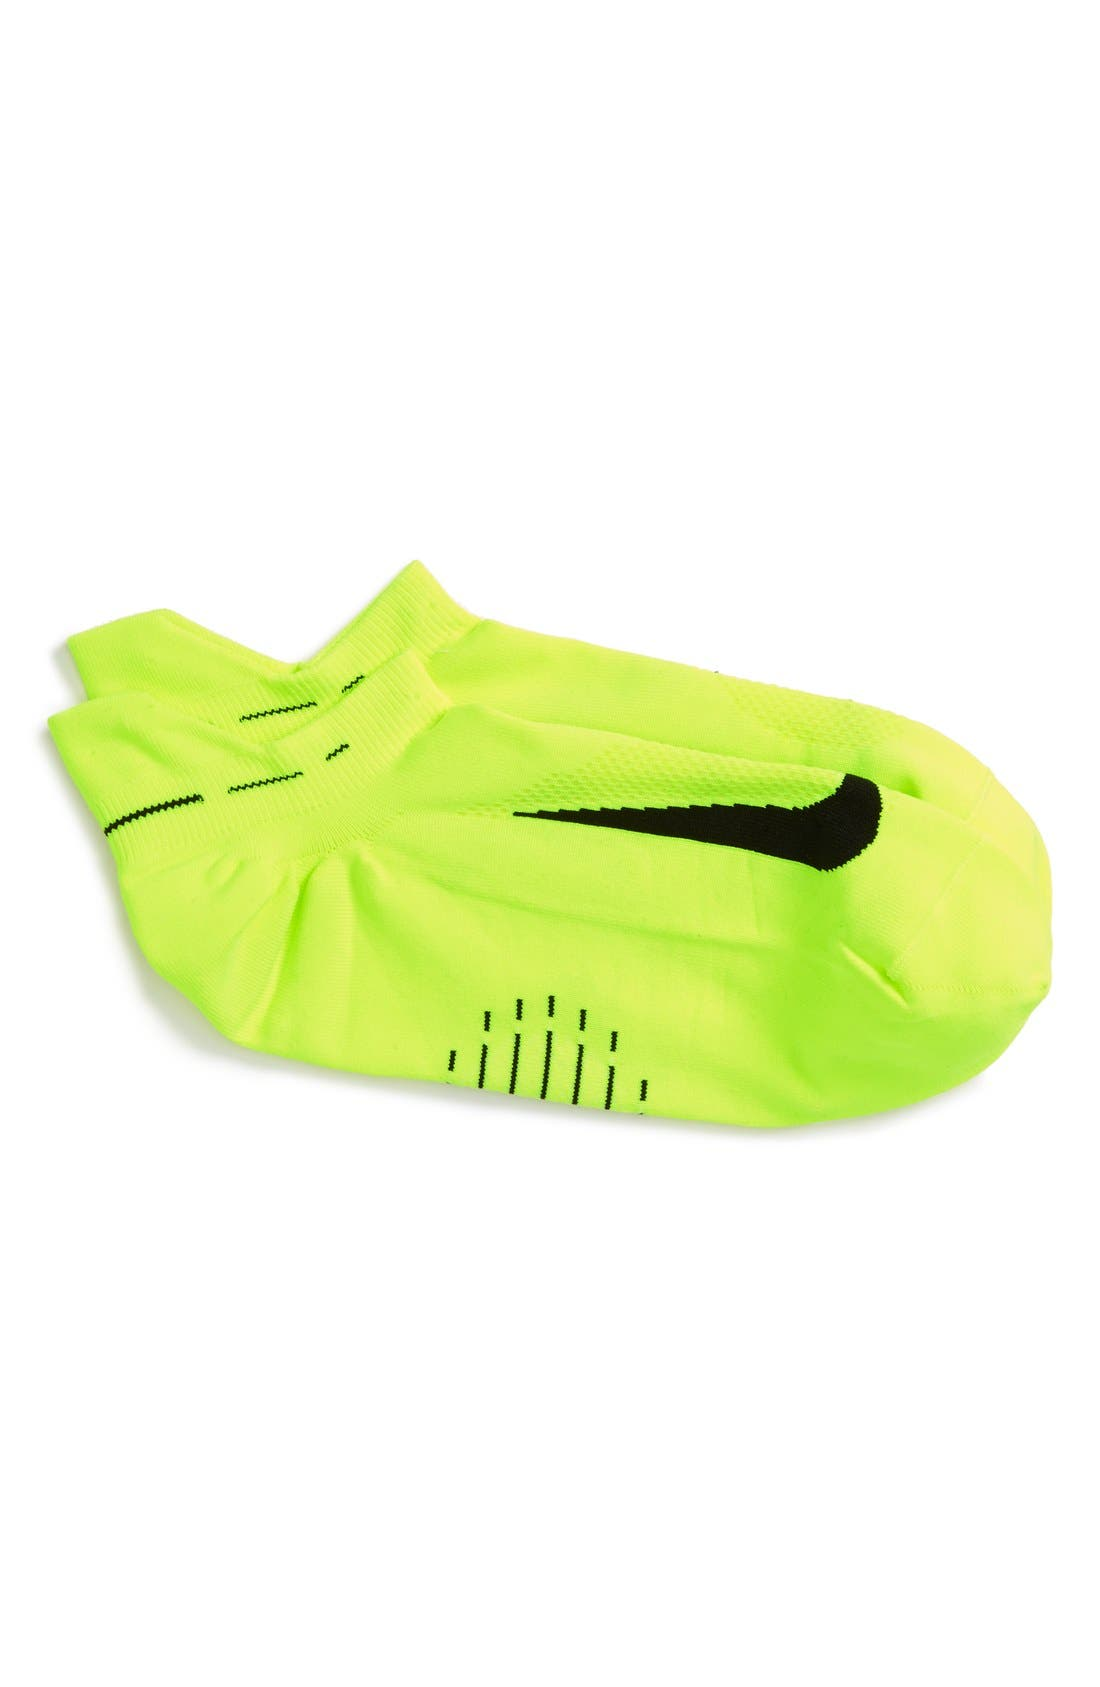 'Elite' Lightweight No-Show Tab Running Socks,                             Main thumbnail 1, color,                             Volt/ Black